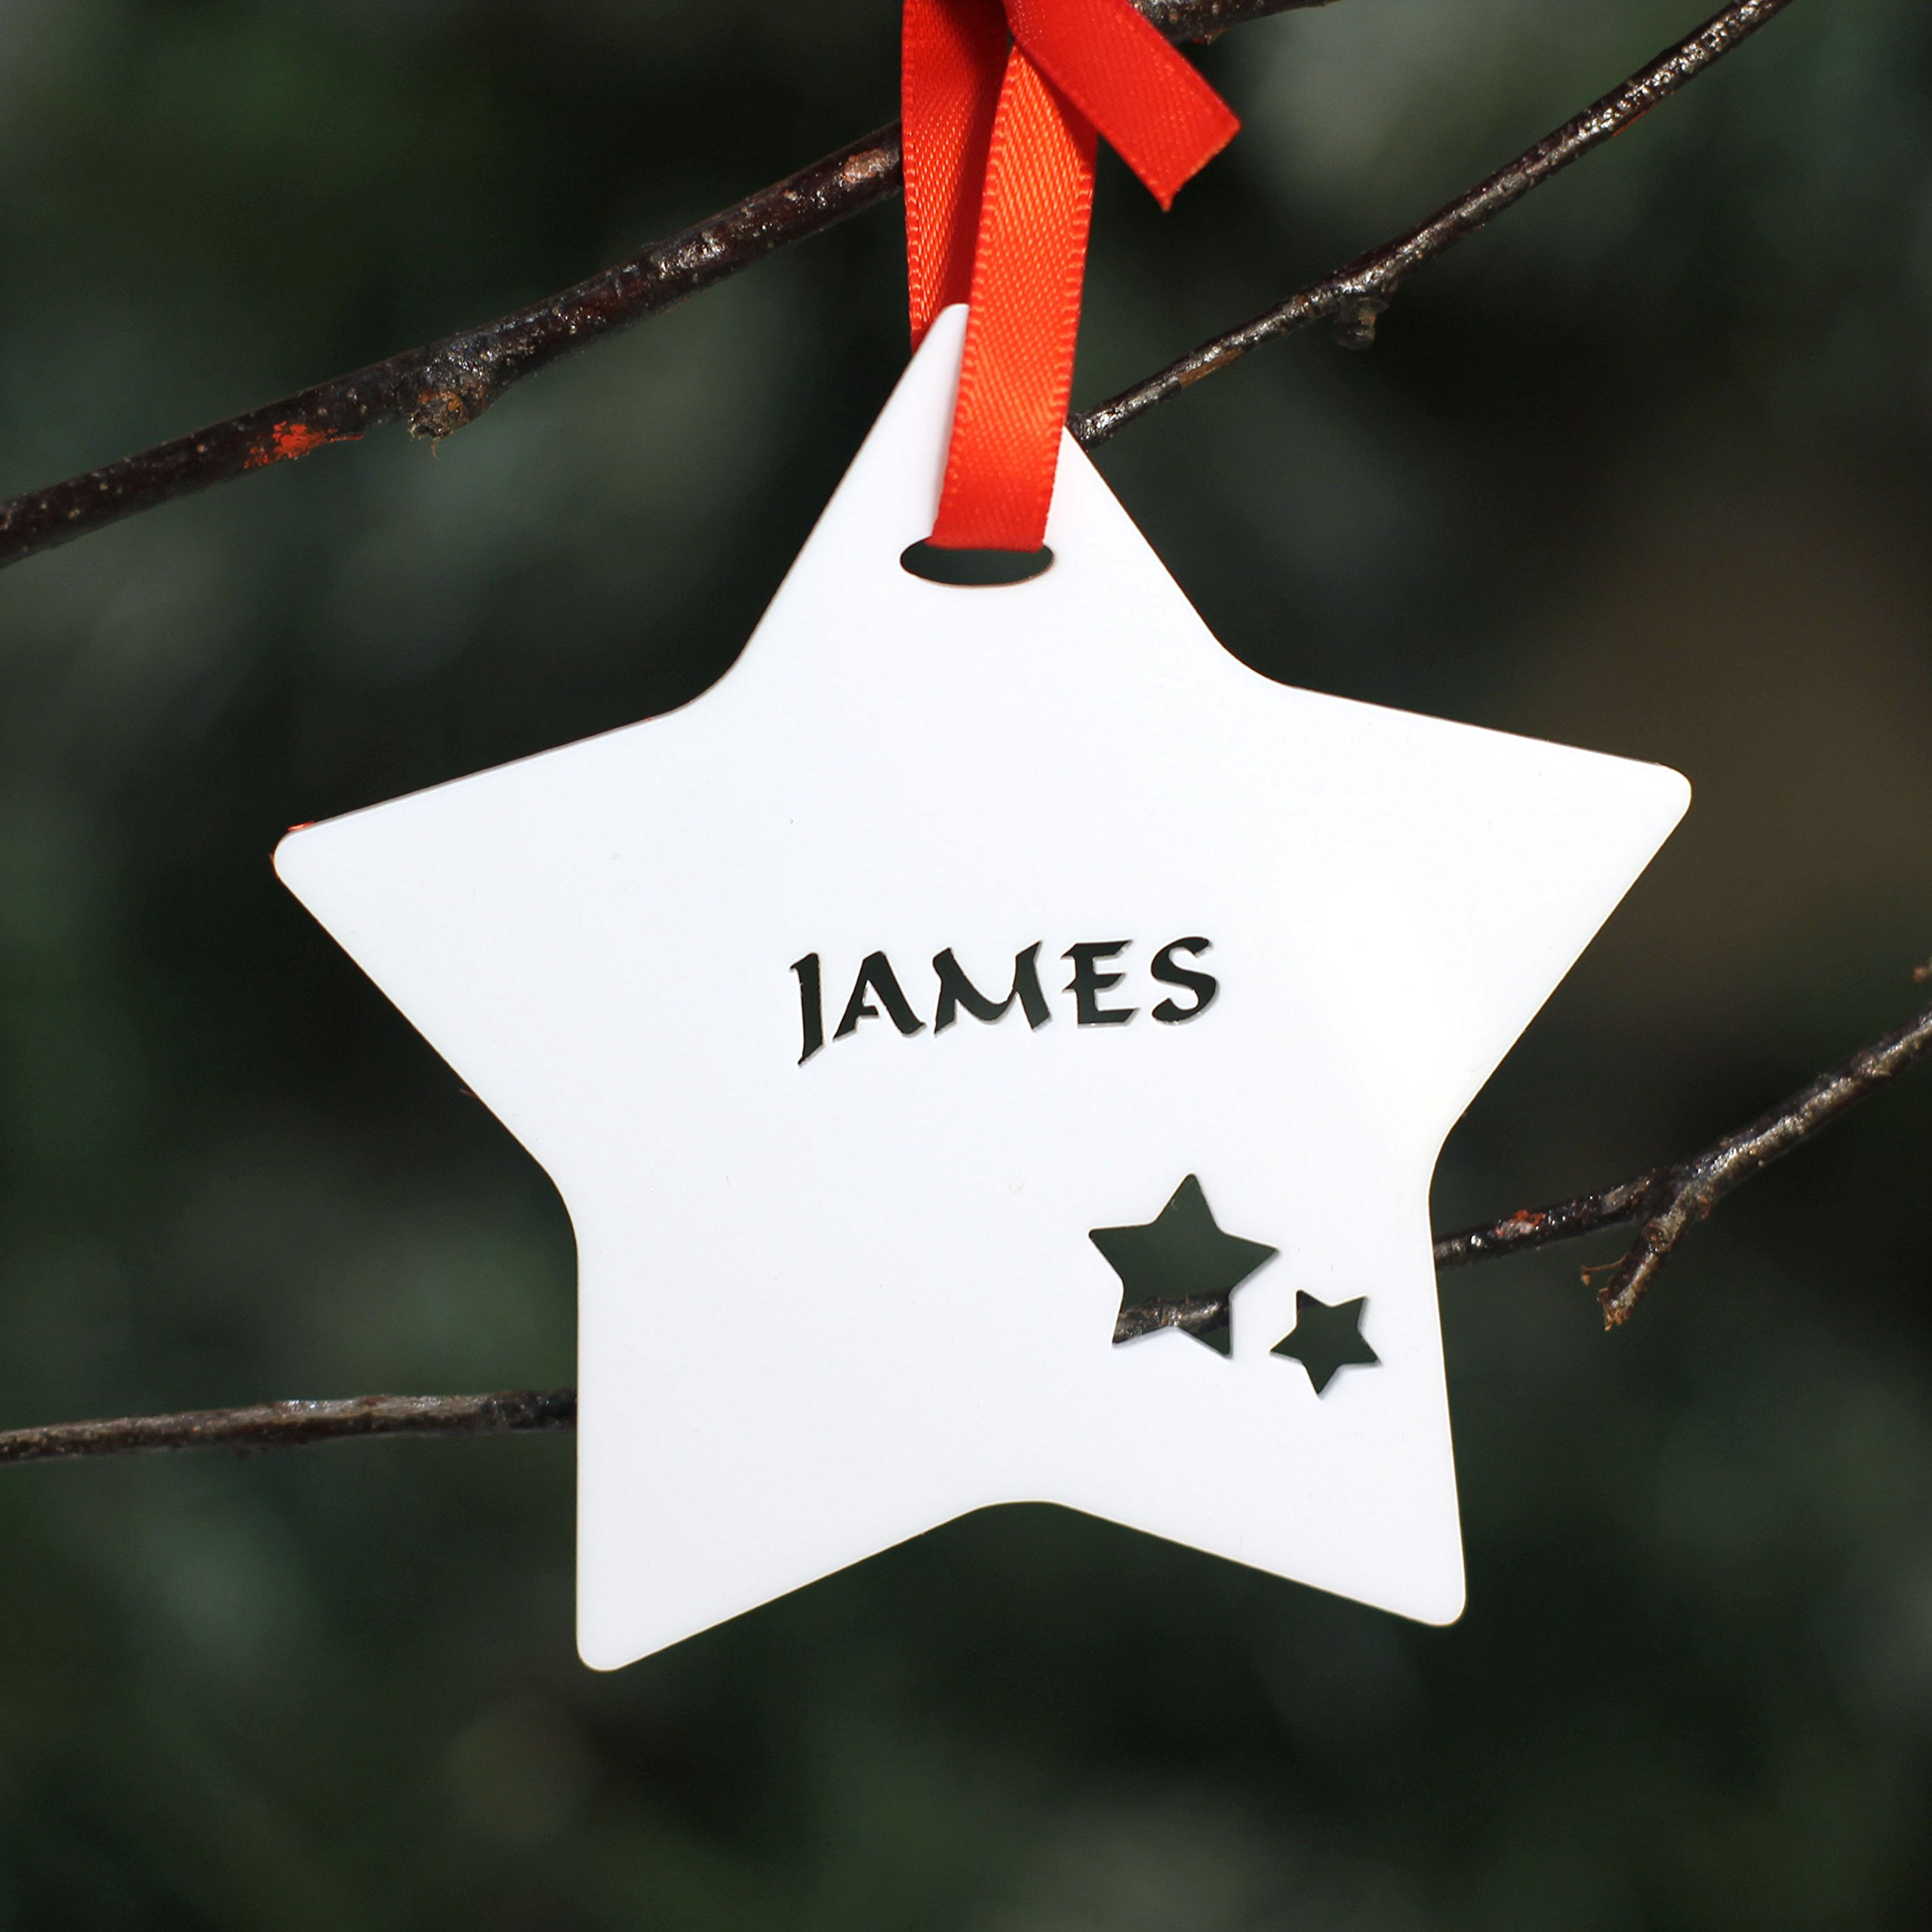 Personalised Custom White Christmas Tree Star Bauble Festive Decoration Ornament Decorations Best Balls Personalise Name With Handmade Xmas O